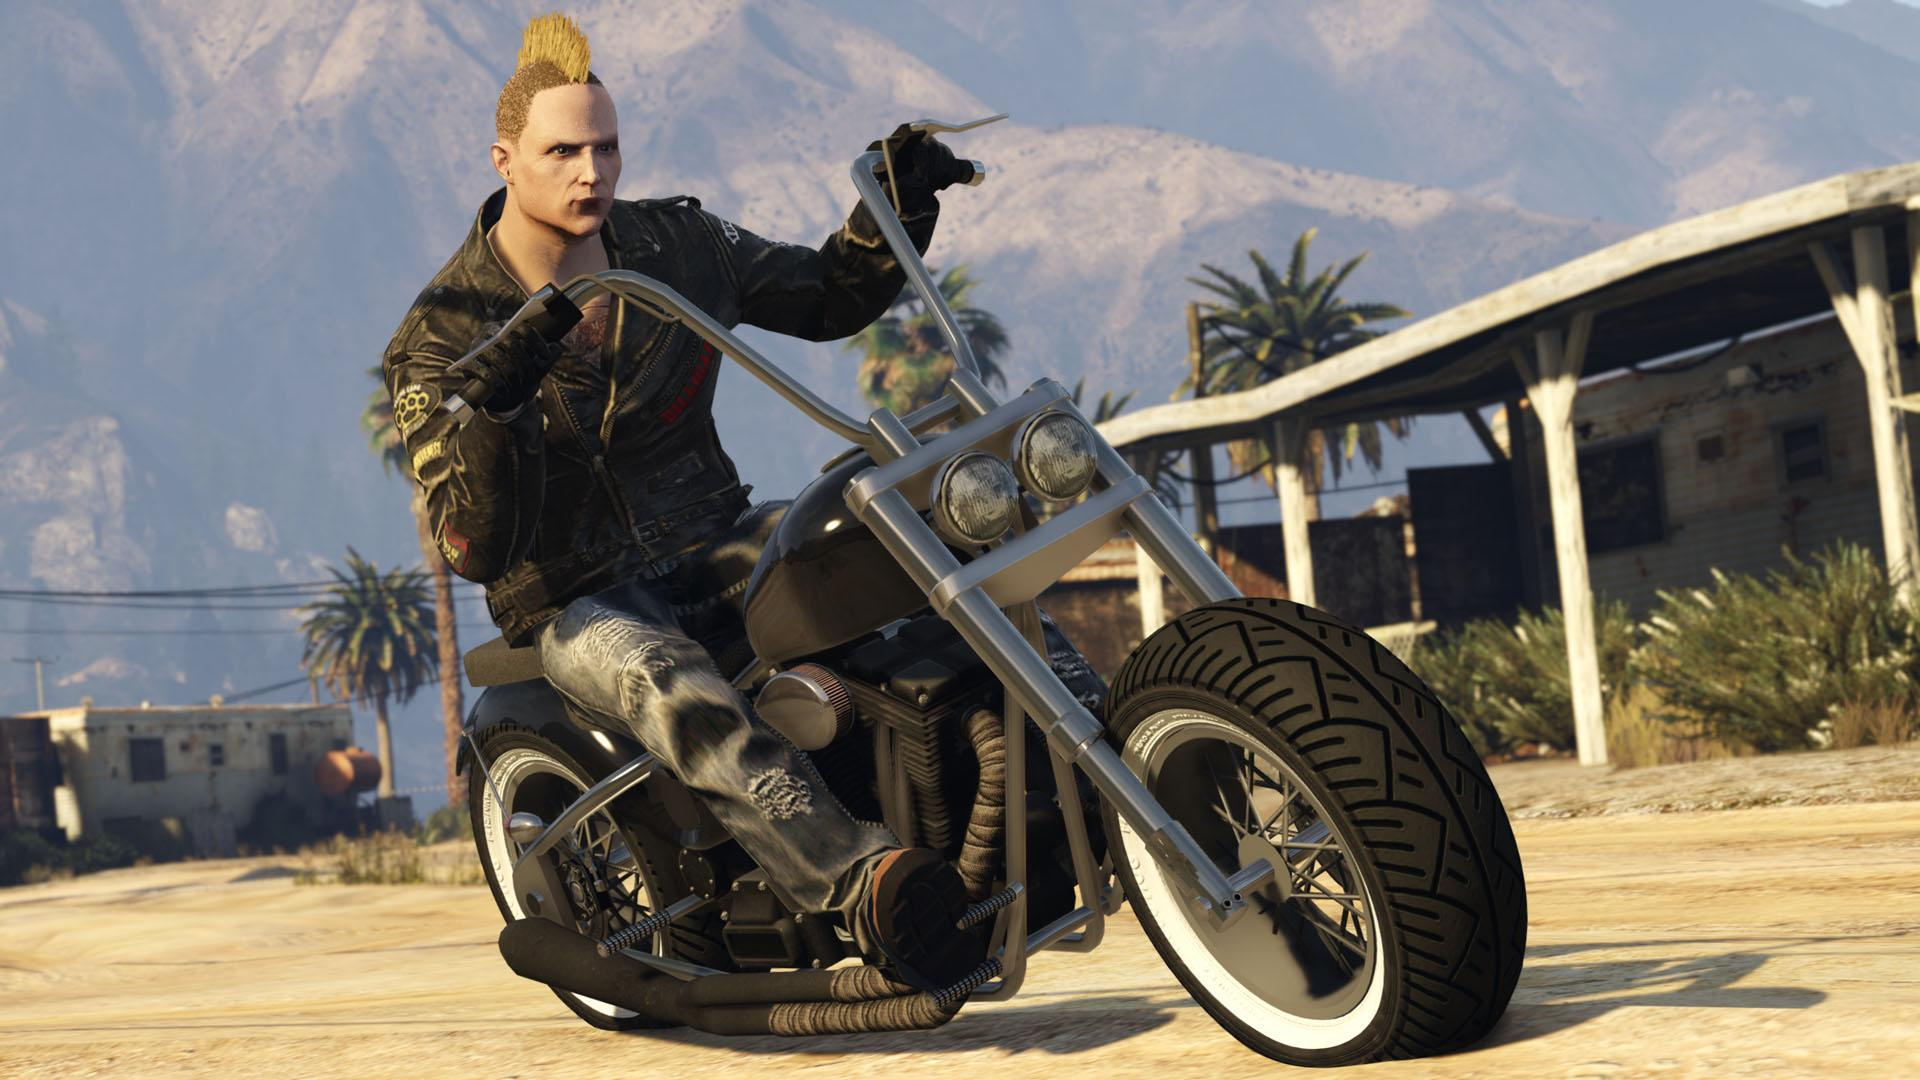 Zombie Chopper Gta V Amp Gta Online Vehicles Database Amp Statistics Grand Theft Auto V